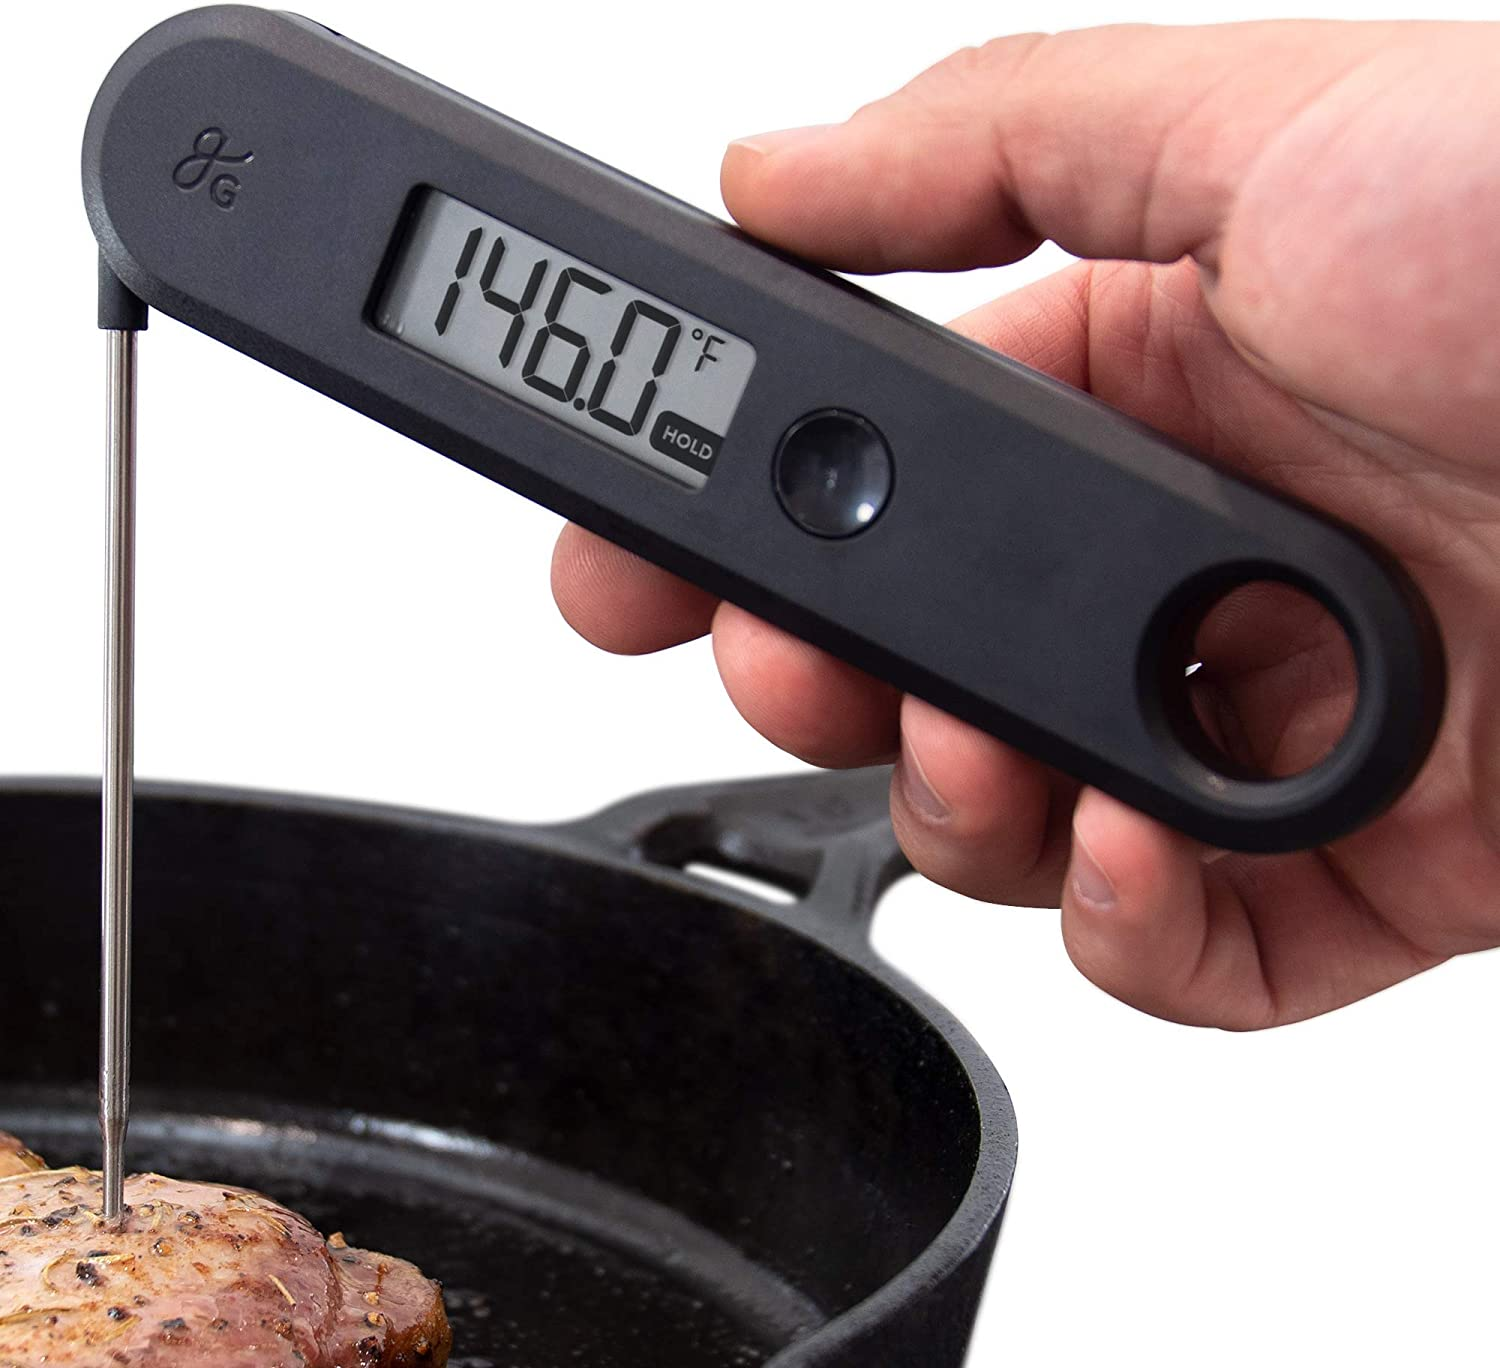 GreaterGoods Digital Food Meat Thermometer, Food Grade Kitchen Tool used with Foods like Bread, Meats, Candy, Oil, BBQ Grill, and more (Dark Grey)